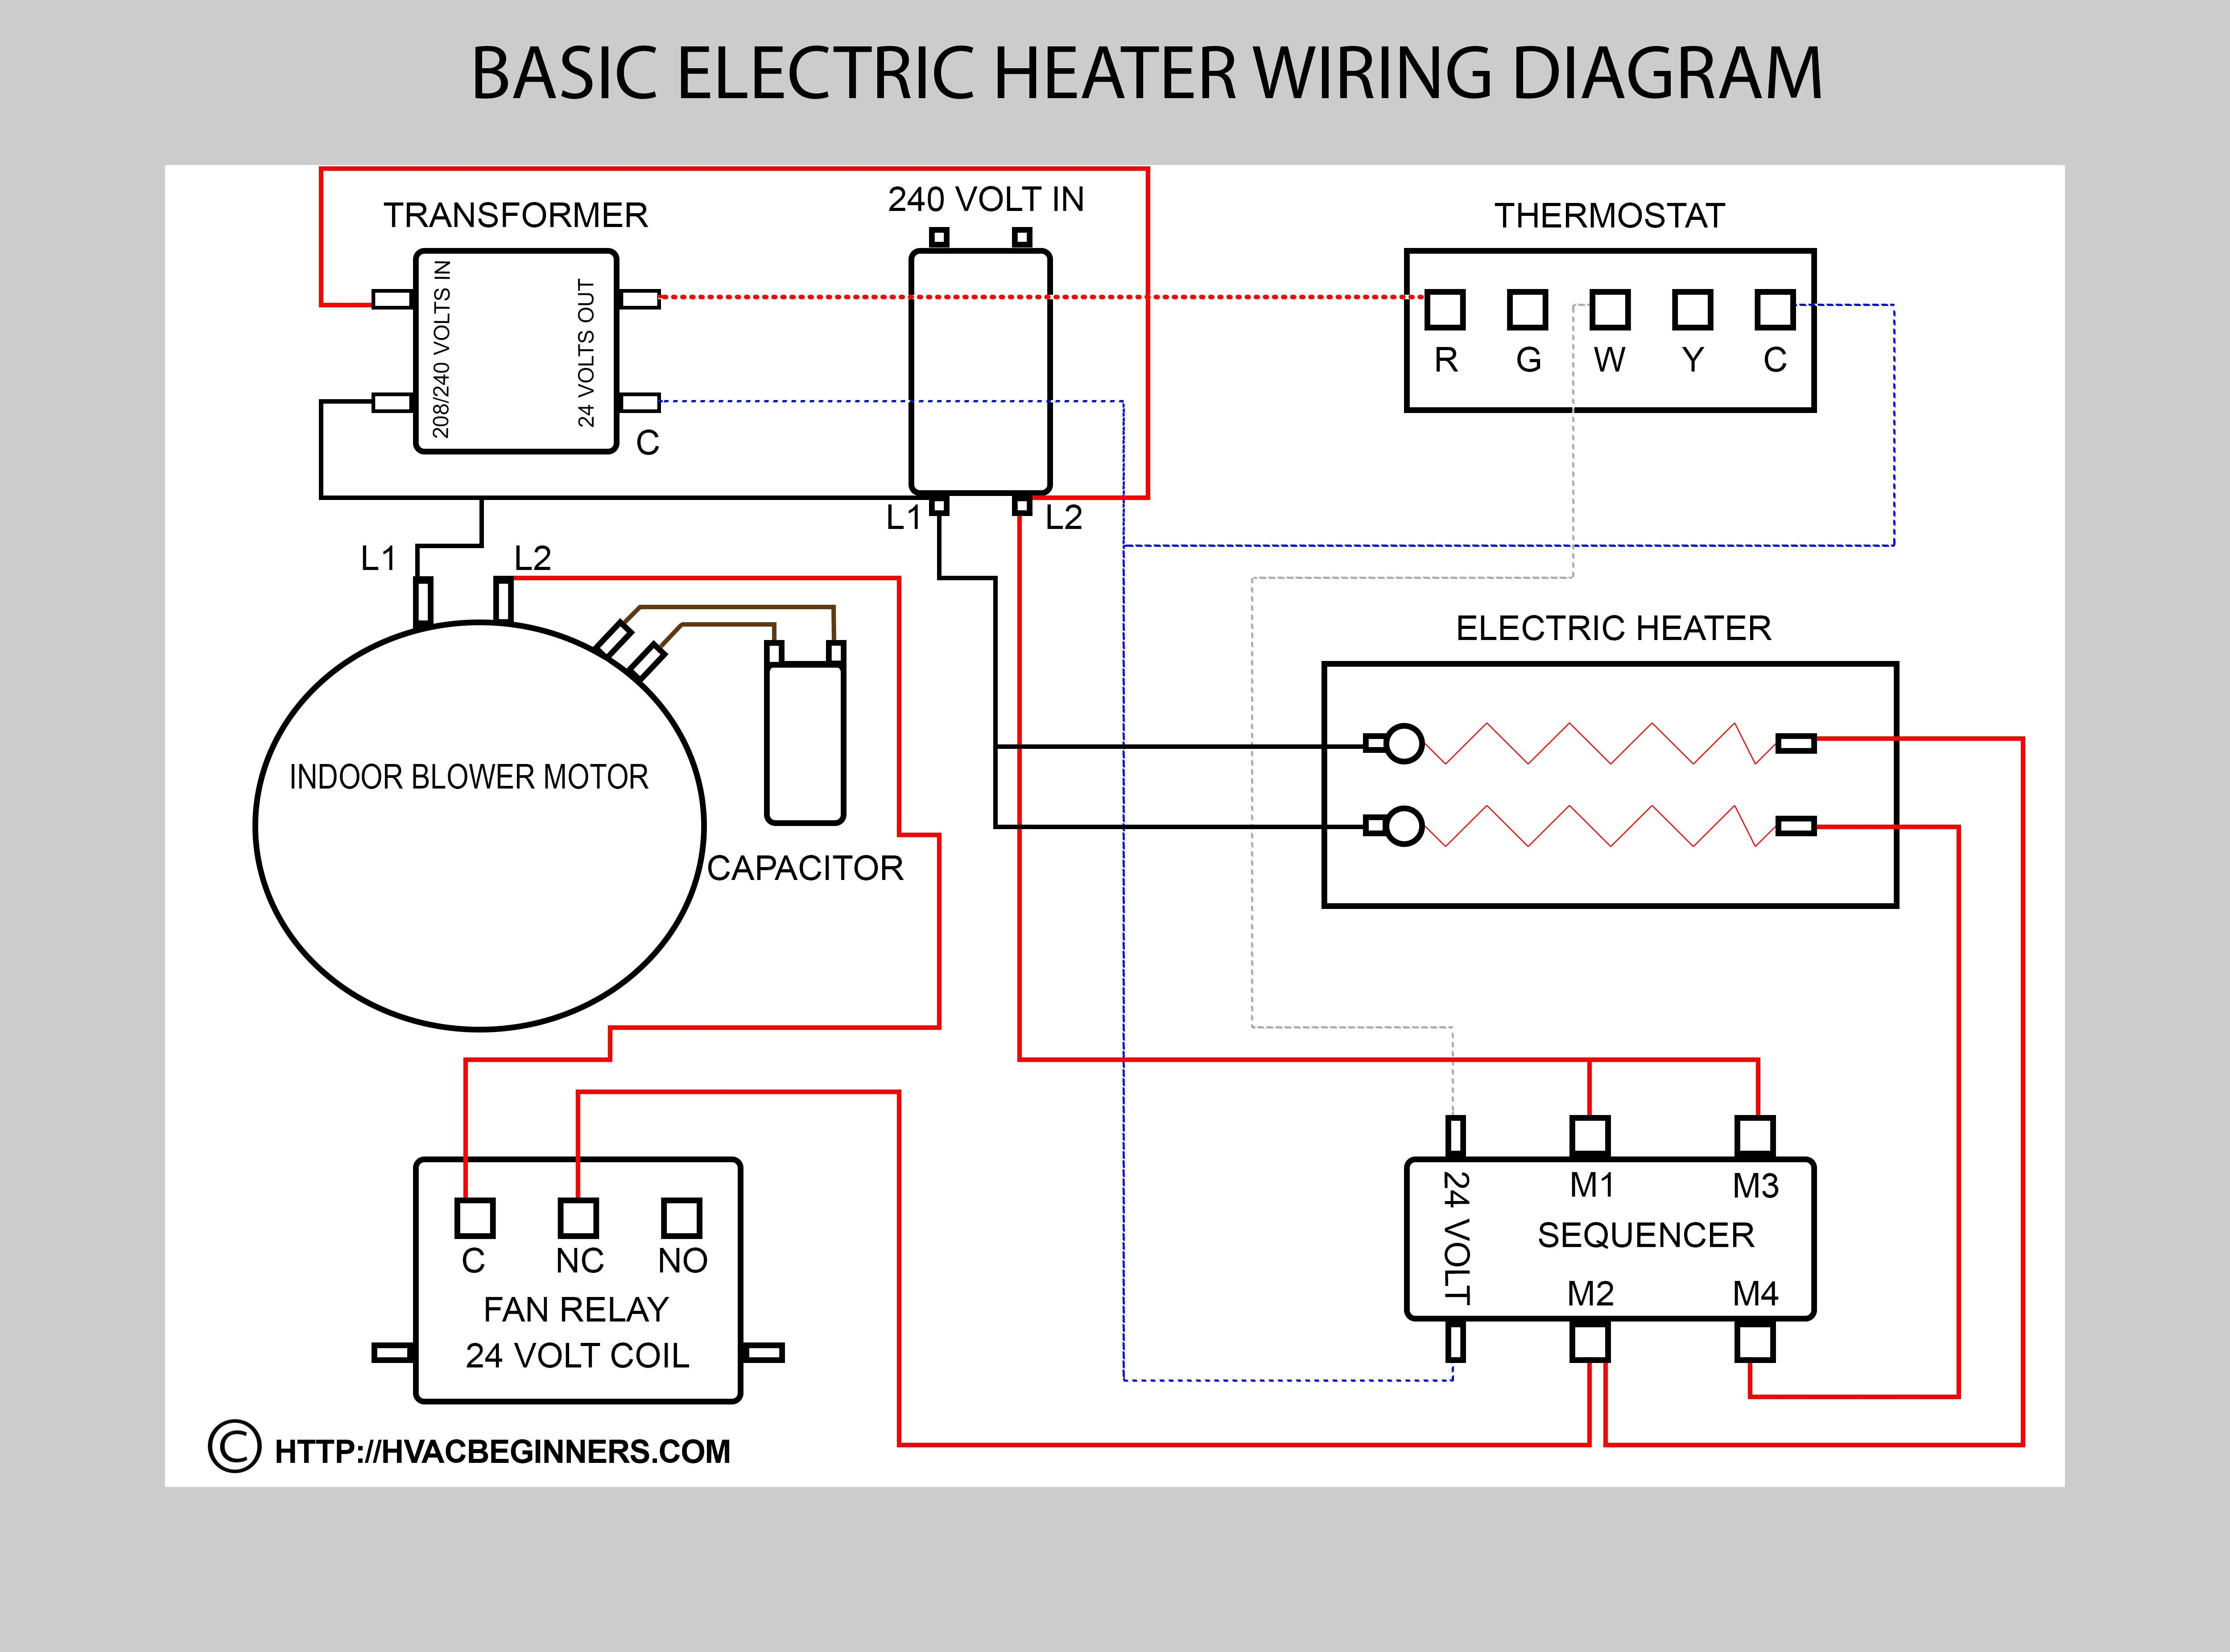 Contactor Wiring Diagram With Timer Diagram Diagramtemplate Diagramsample Schaltplan Transformers Schalter